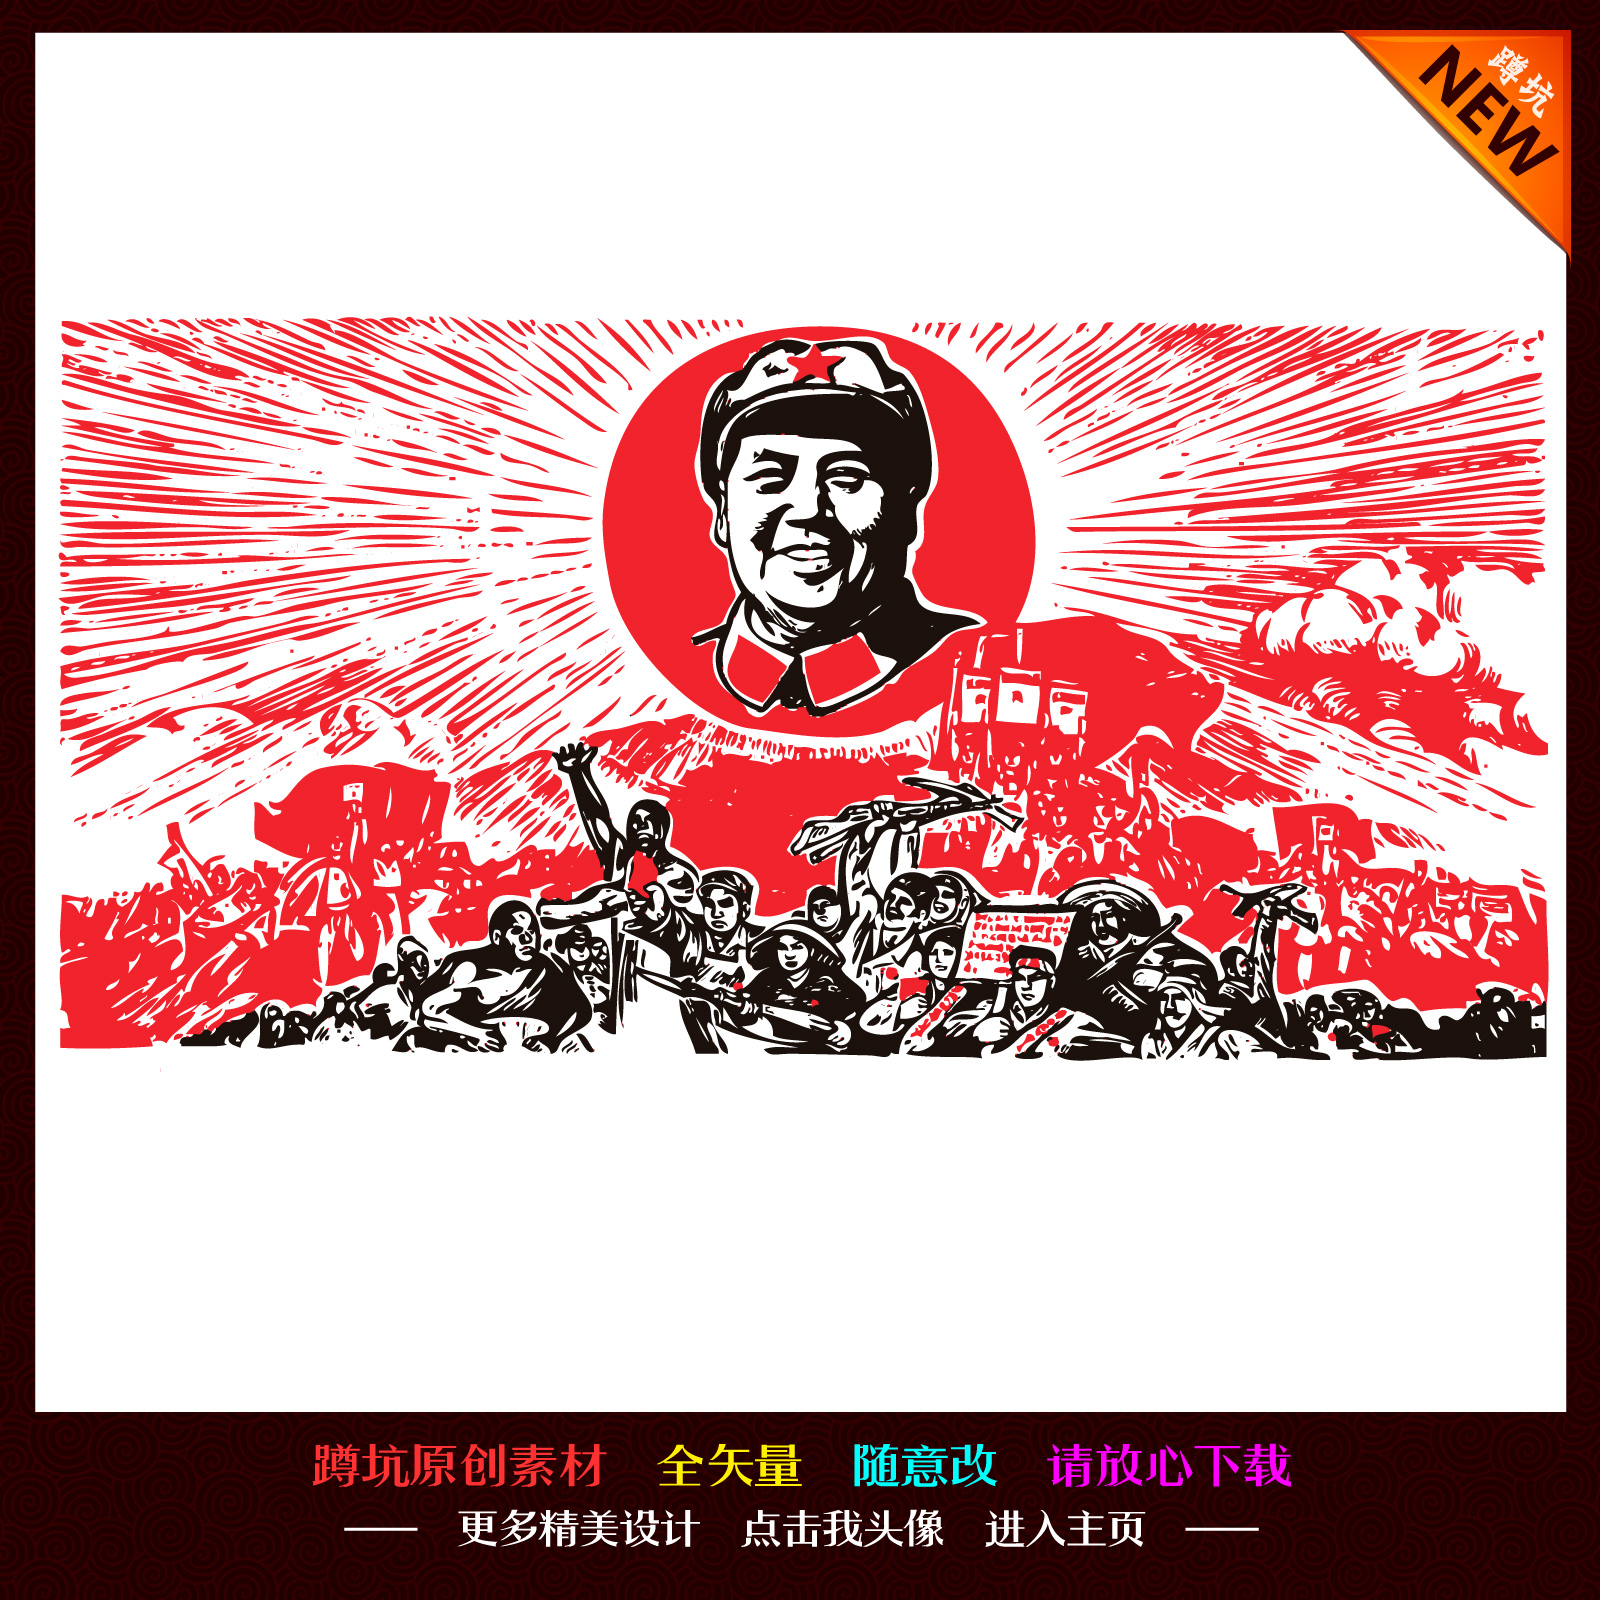 Chinese President Mao Zedong Thought - China Illustrations Vectors AI ESP